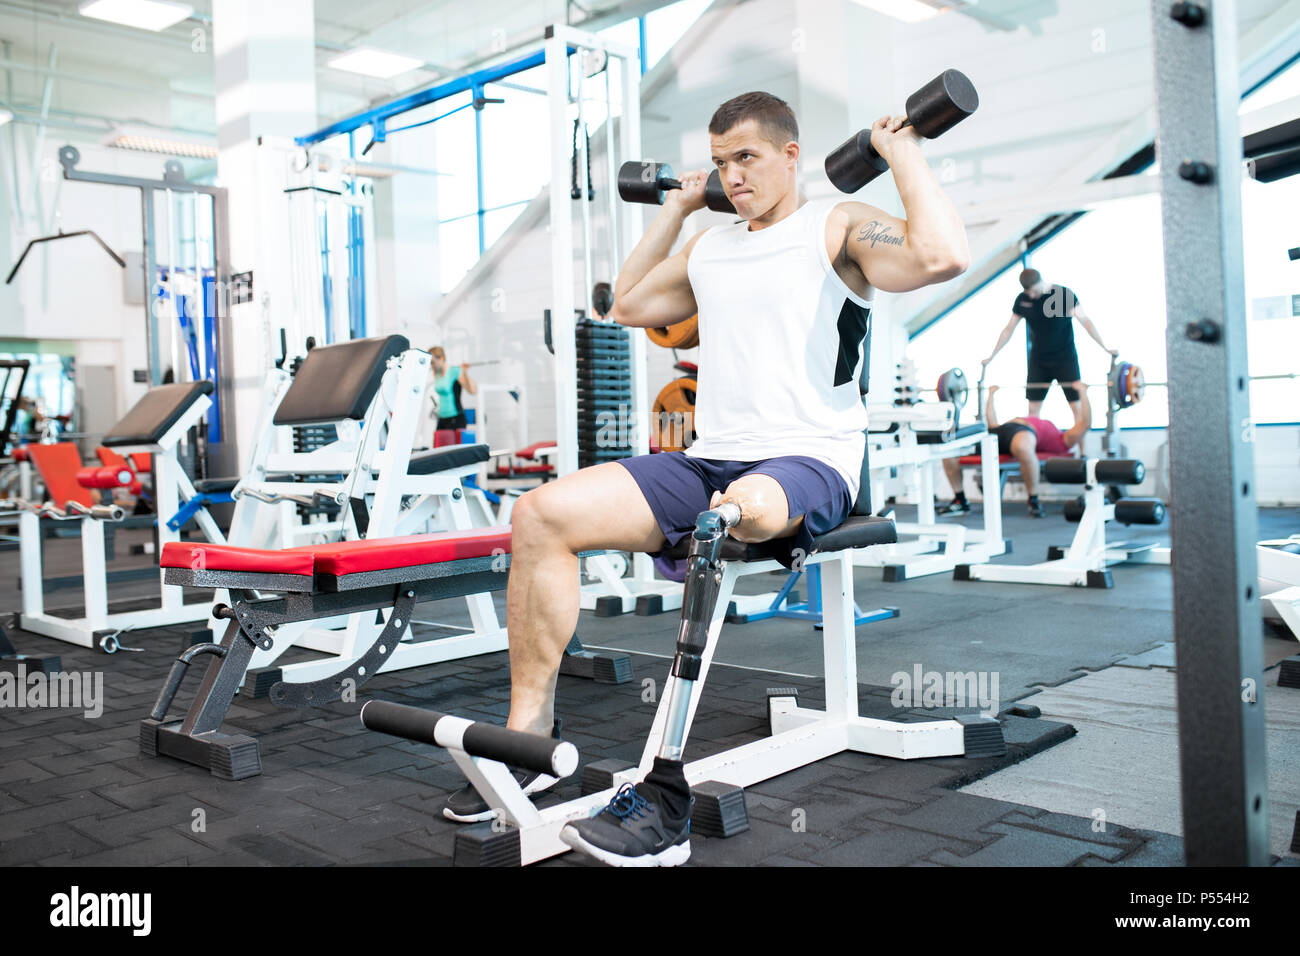 Handicapped Sportsman Training in Gym - Stock Image